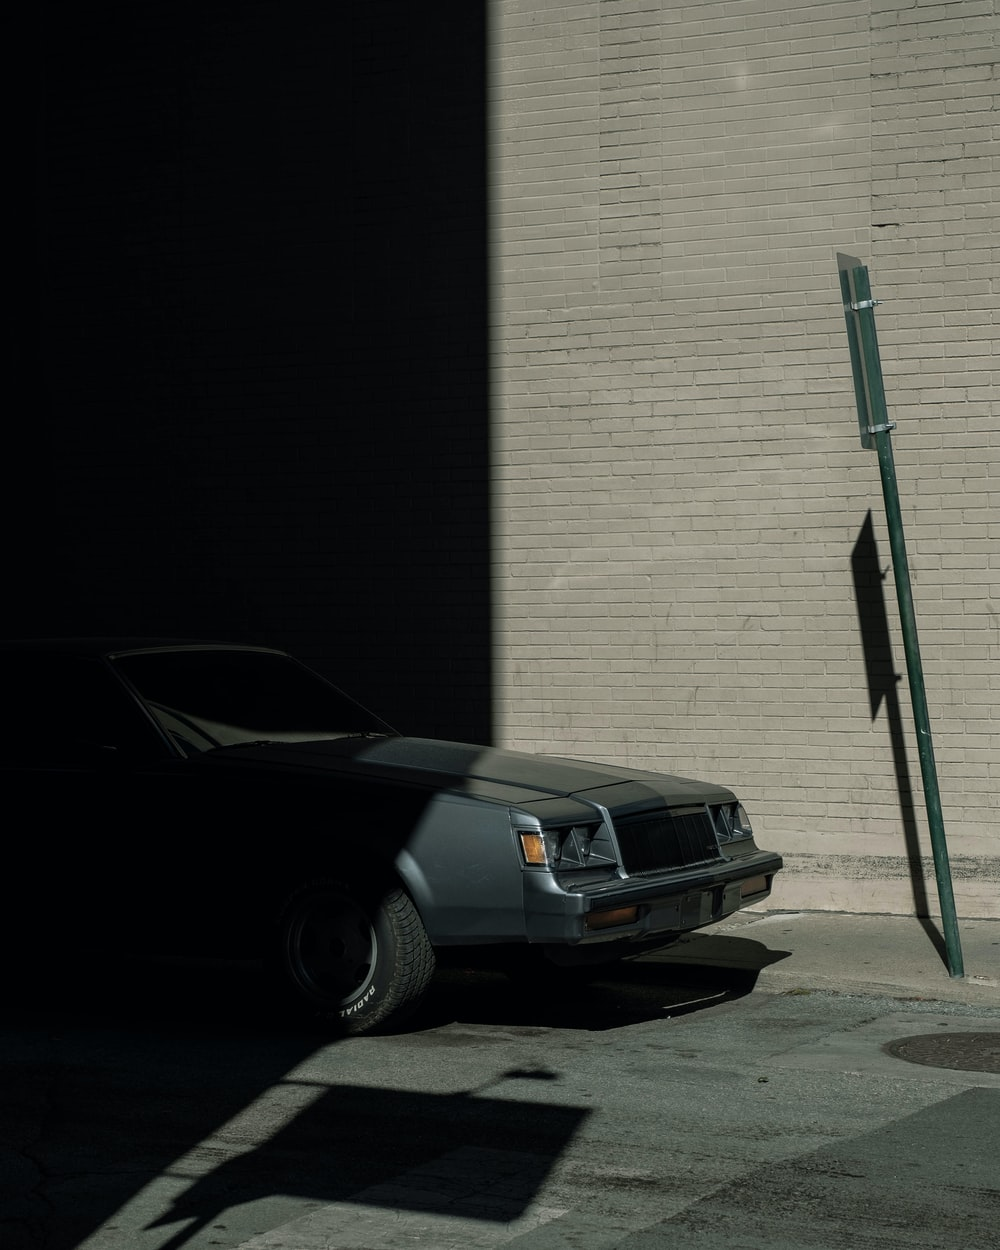 gray vehicle parked near building